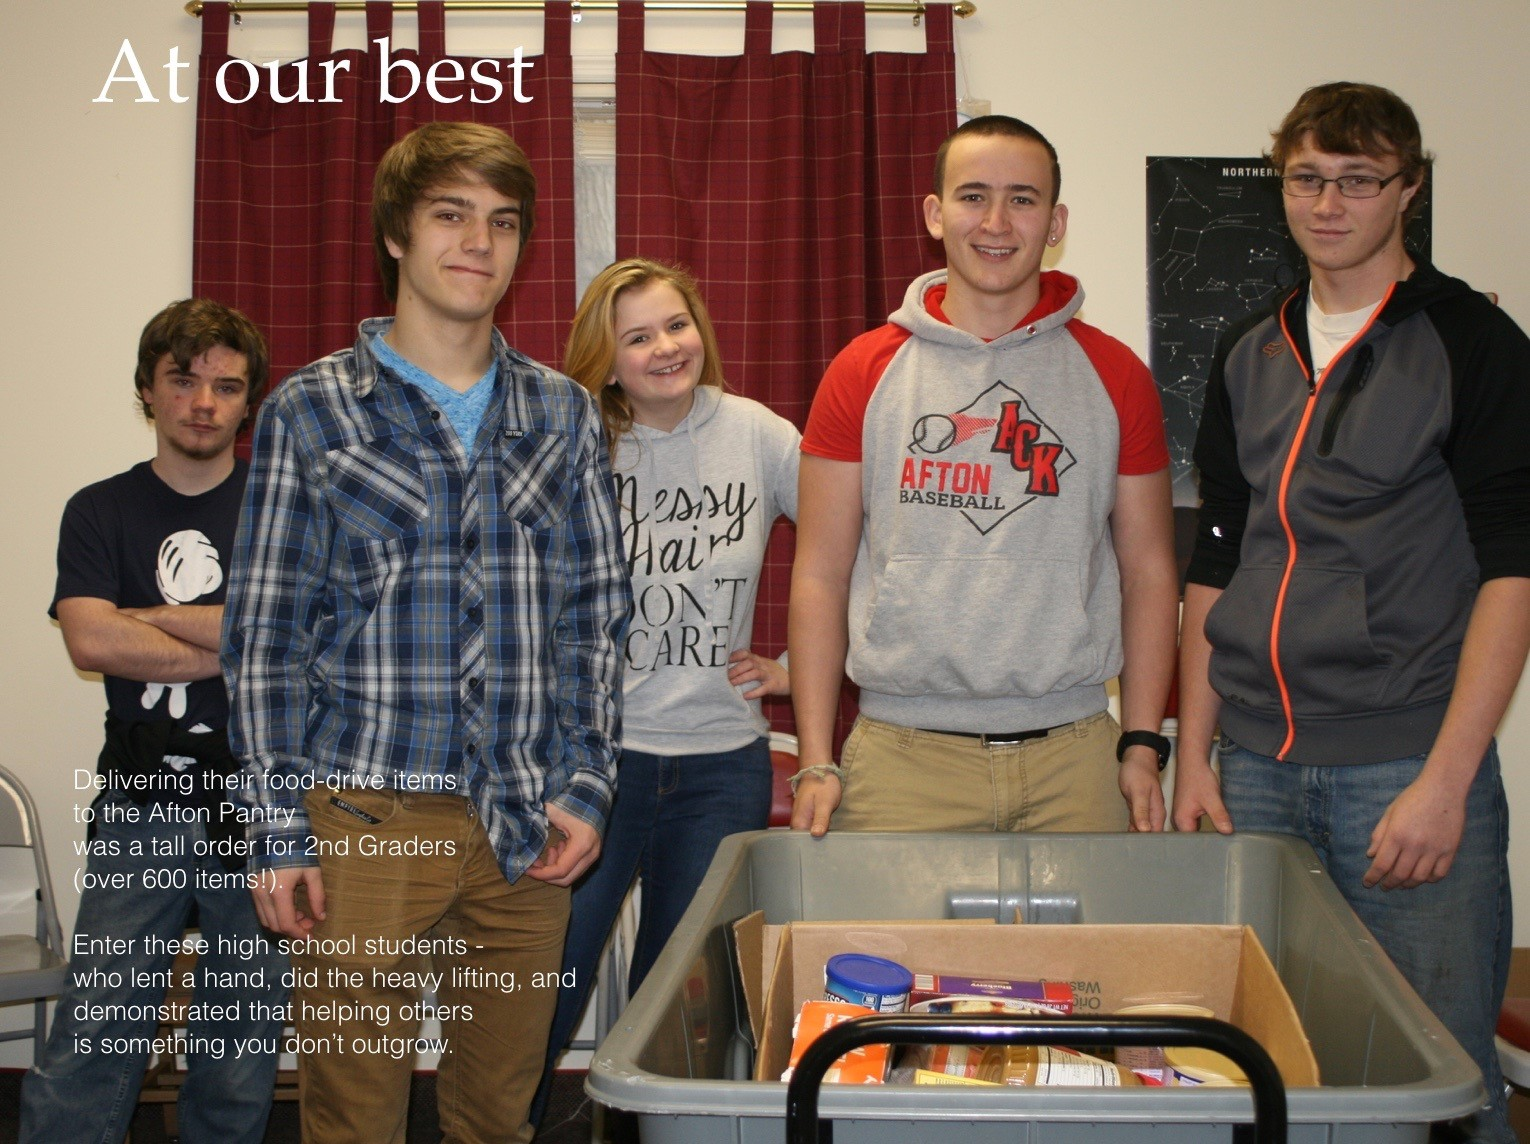 ACSLIB Poster: At our best, group of students helping with food pantry effort.